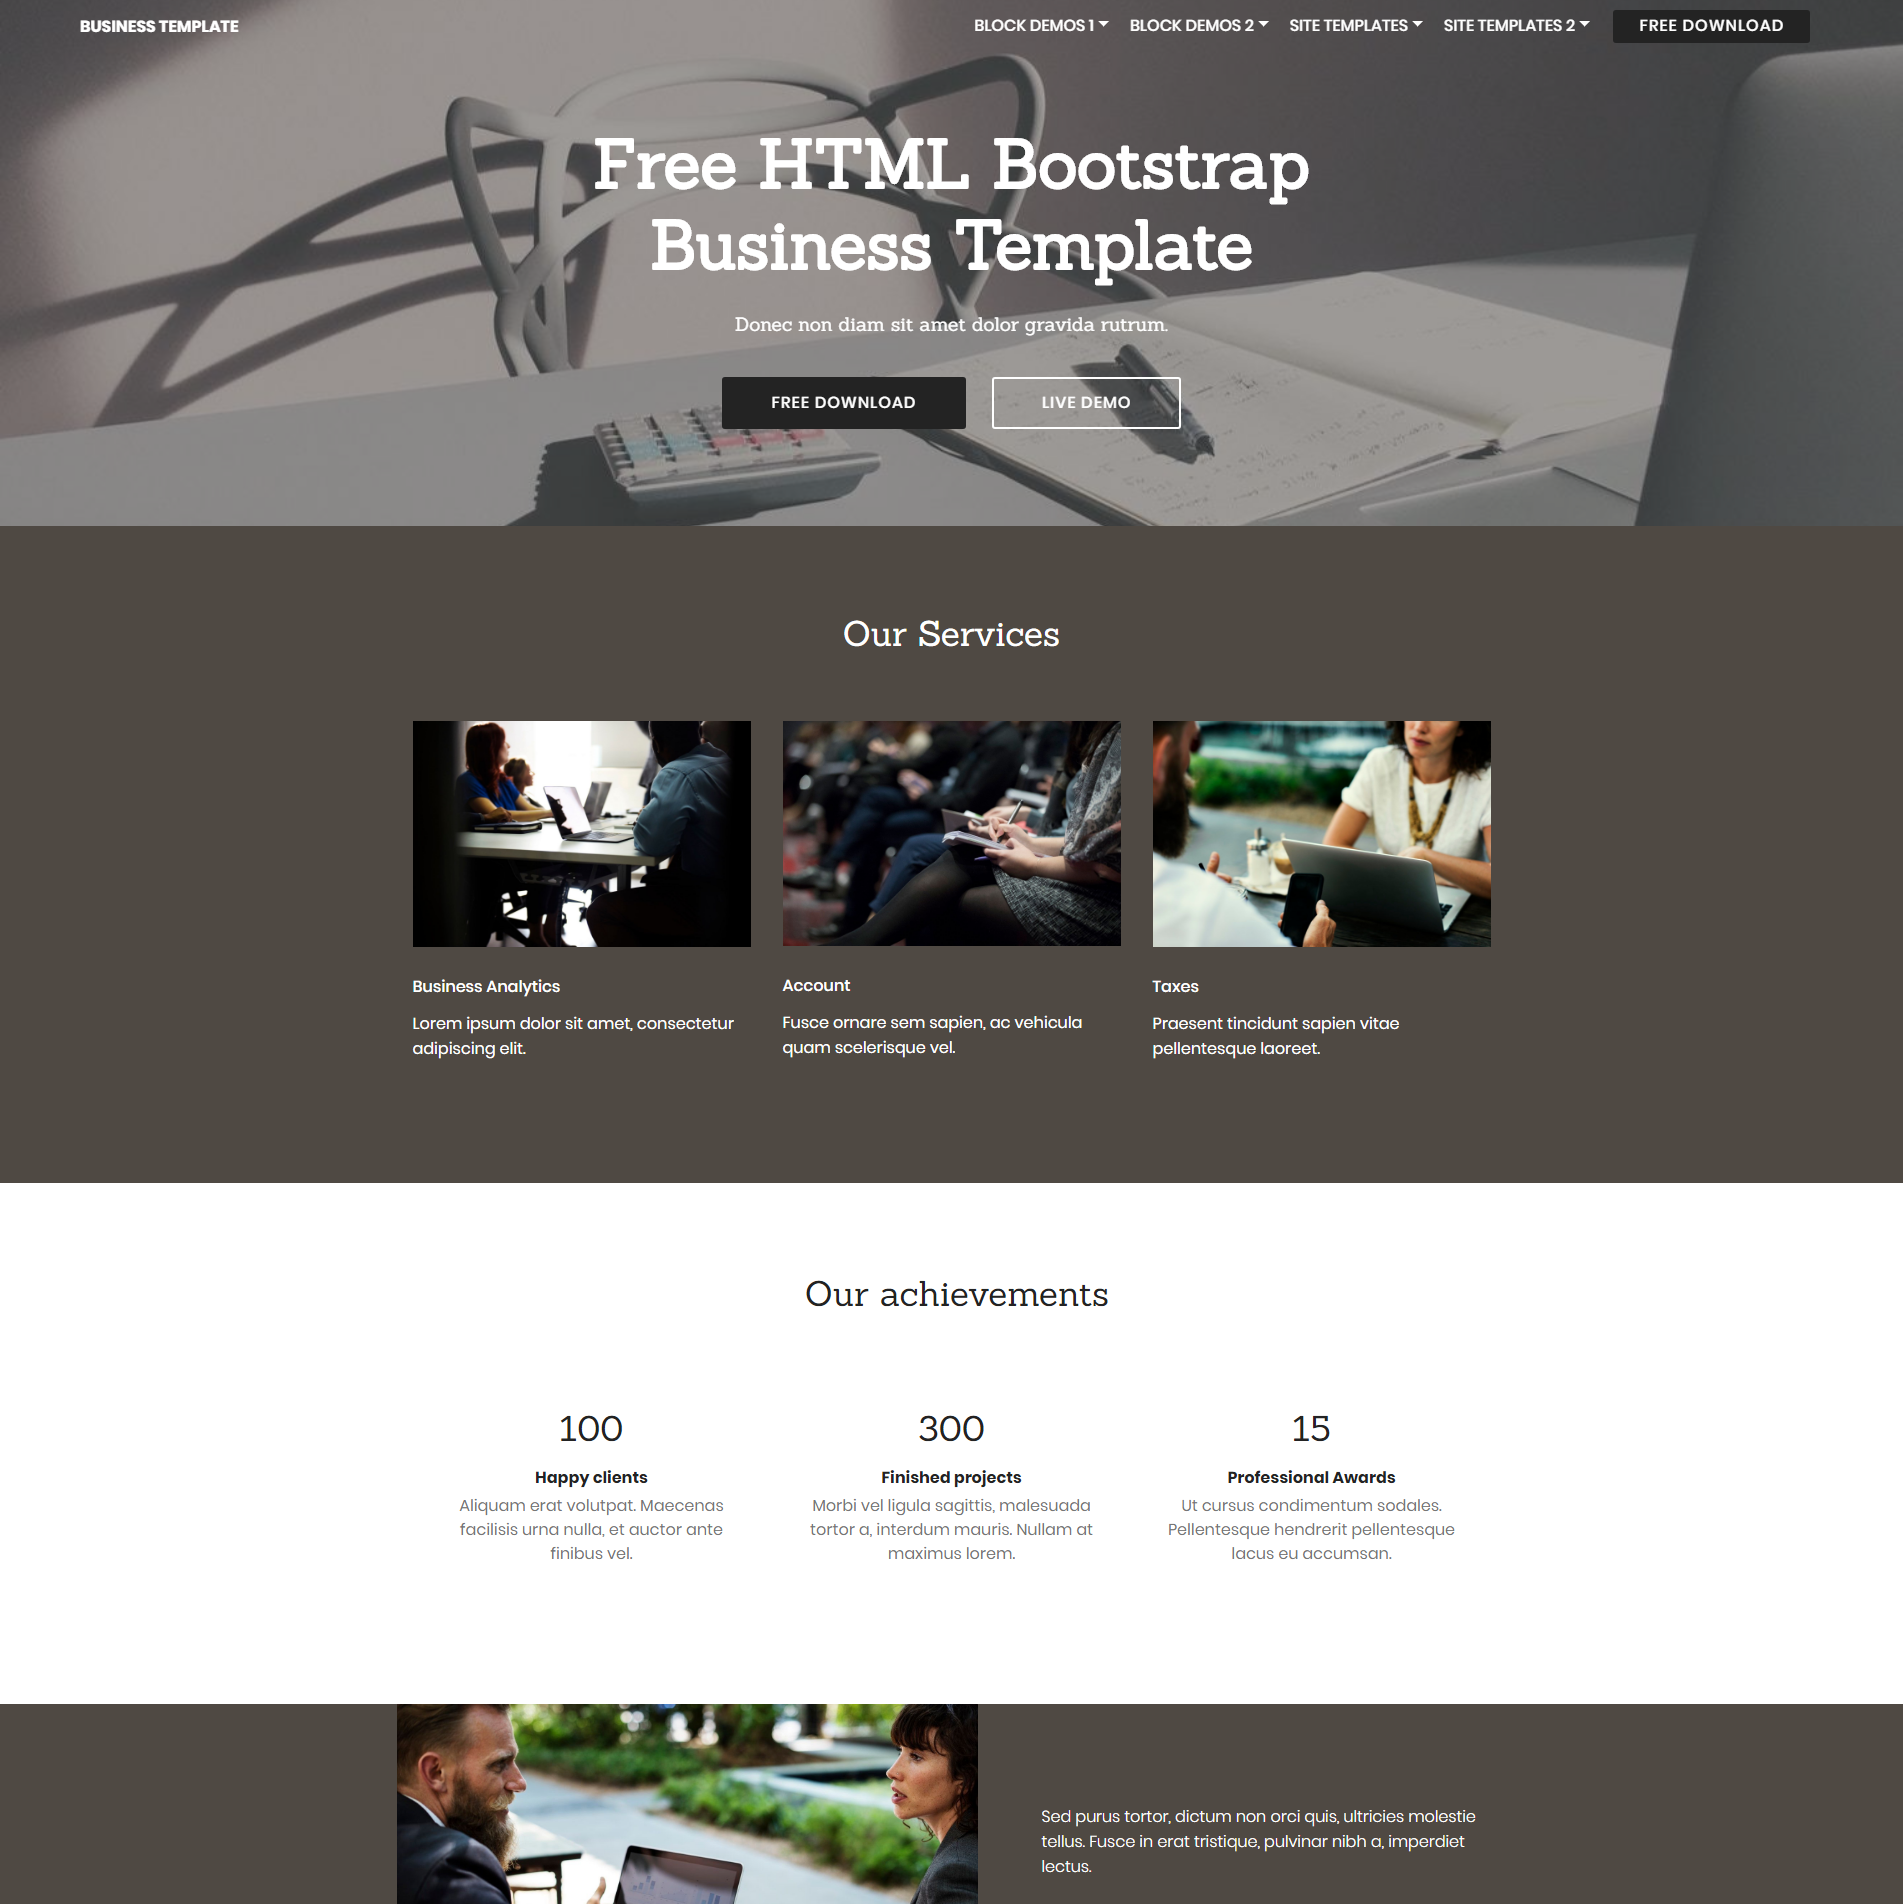 HTML Bootstrap Business Templates